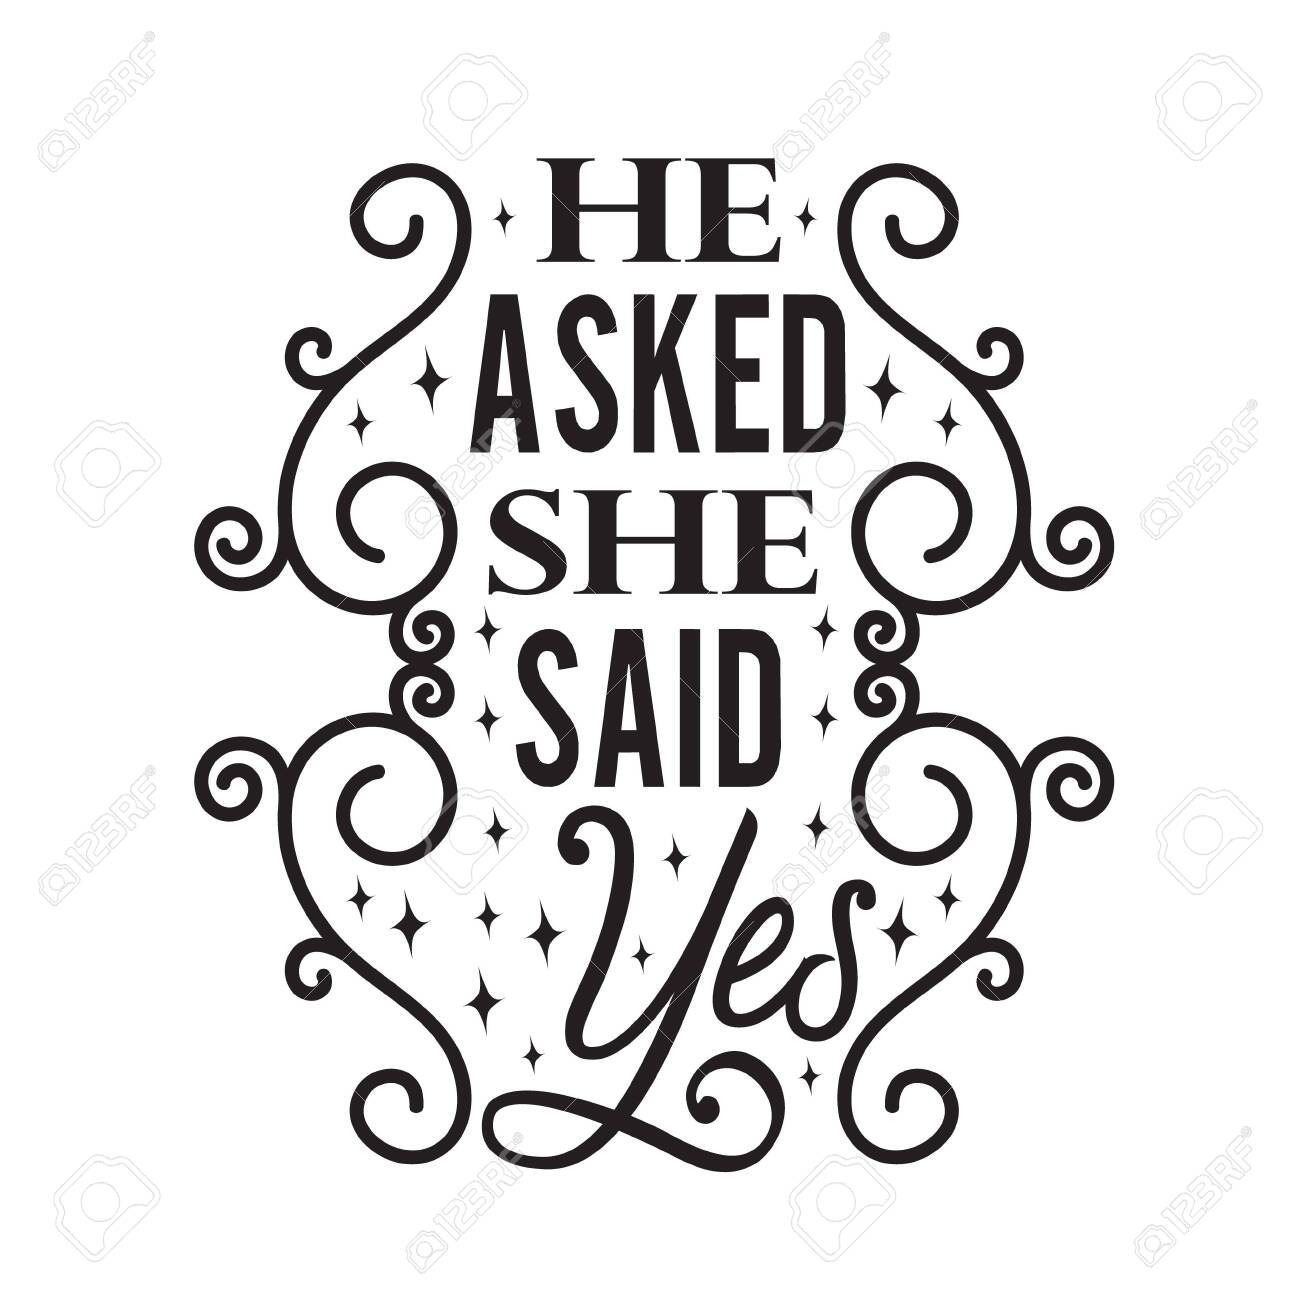 Wedding Quotes And Slogan Good For T Shirt He Asked She Said Royalty Free Cliparts Vectors And Stock Illustration Image 152767418 He said that _____ to the sales yet. wedding quotes and slogan good for t shirt he asked she said